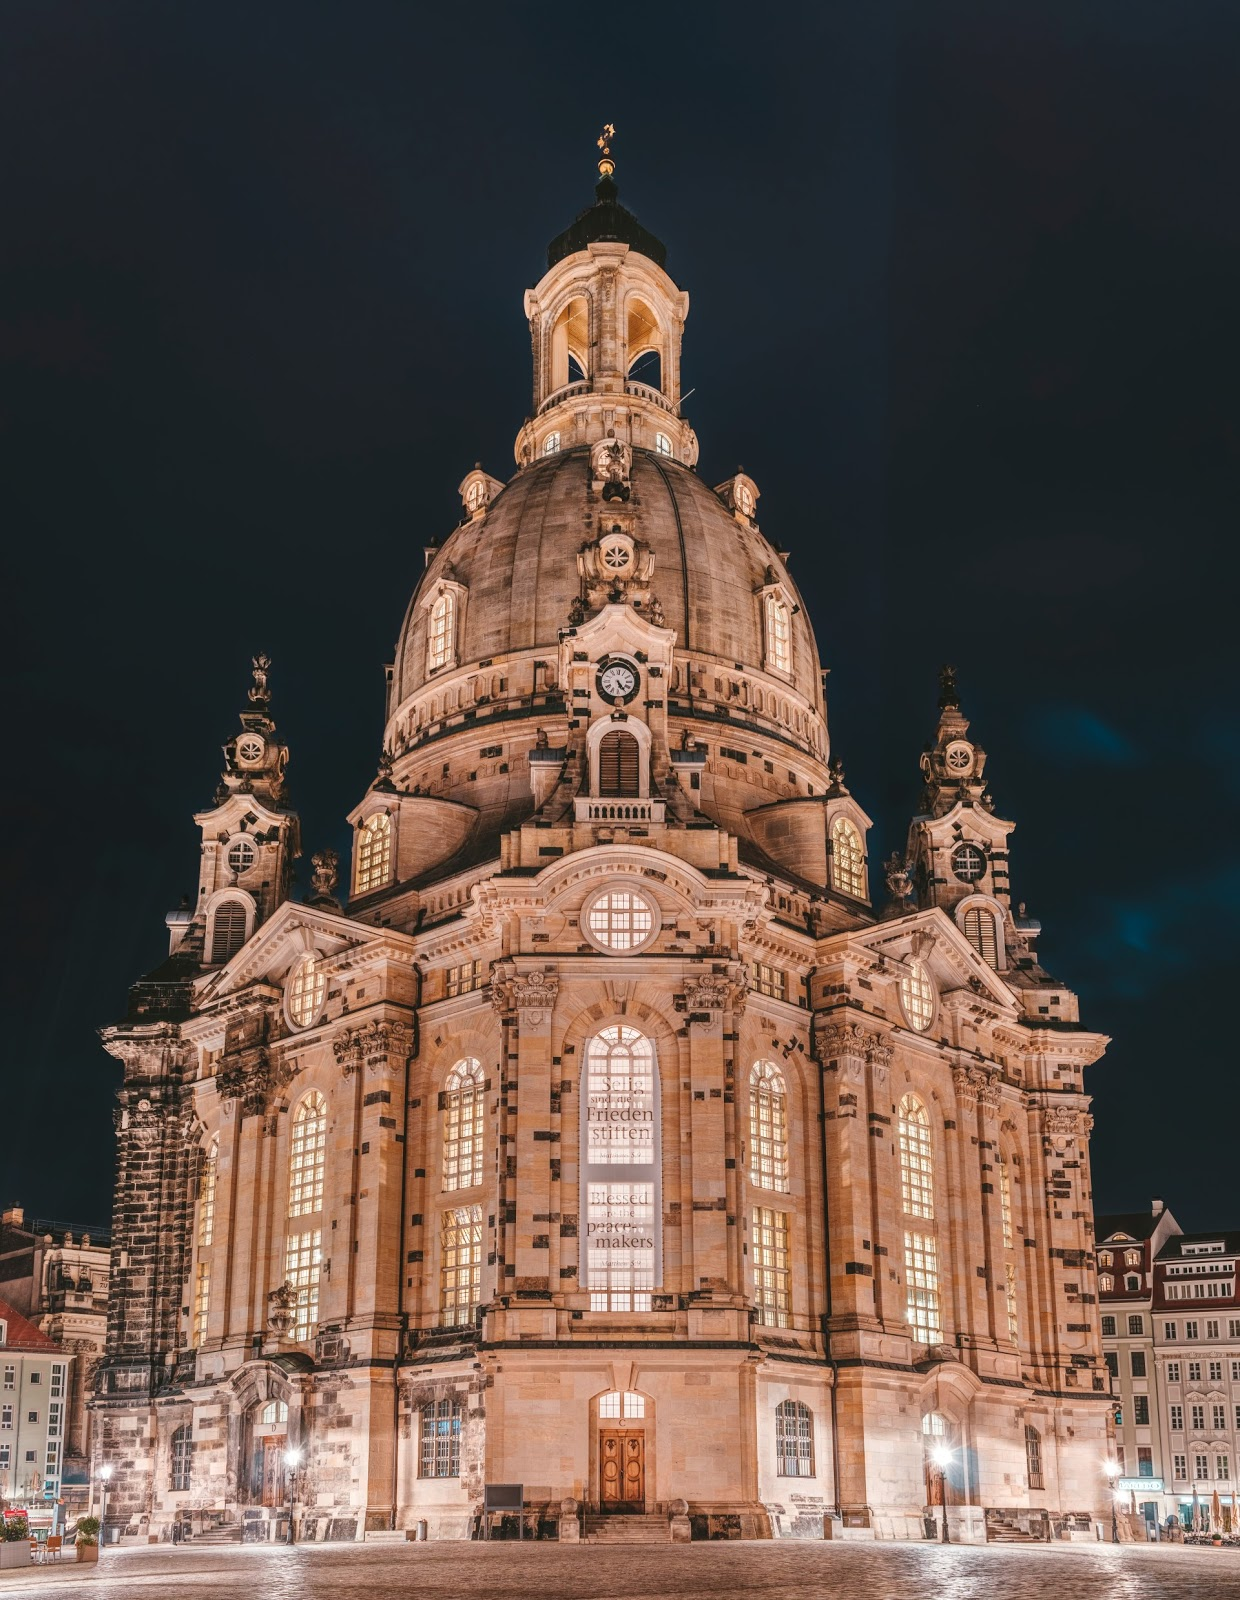 Beautiful Image of the Frauenkirche Church in Dresden after the reconstruction